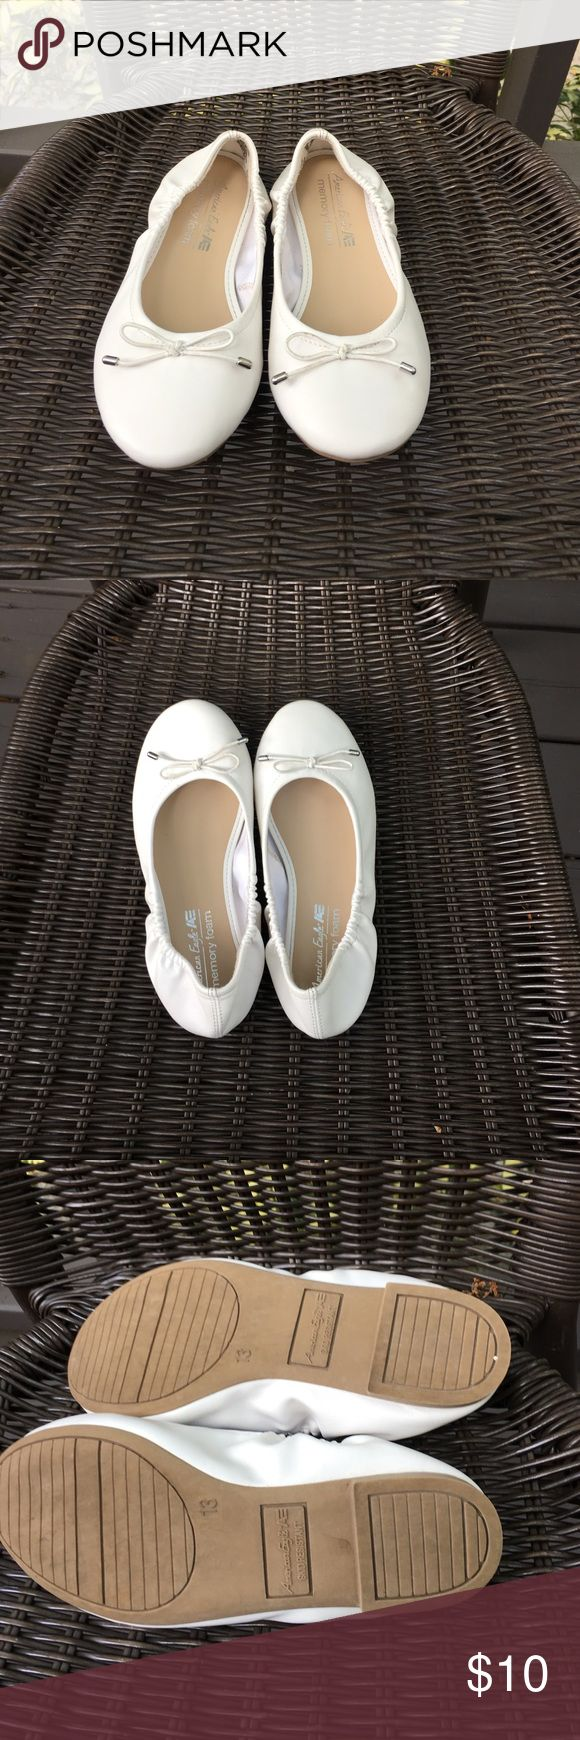 American Eagle girls white slip on shoes Very nice worn once slip on white shoes with elastic on sides, white bows on front, memory foam inside. No scuffs or stains American Eagle by Payless Shoes Dress Shoes